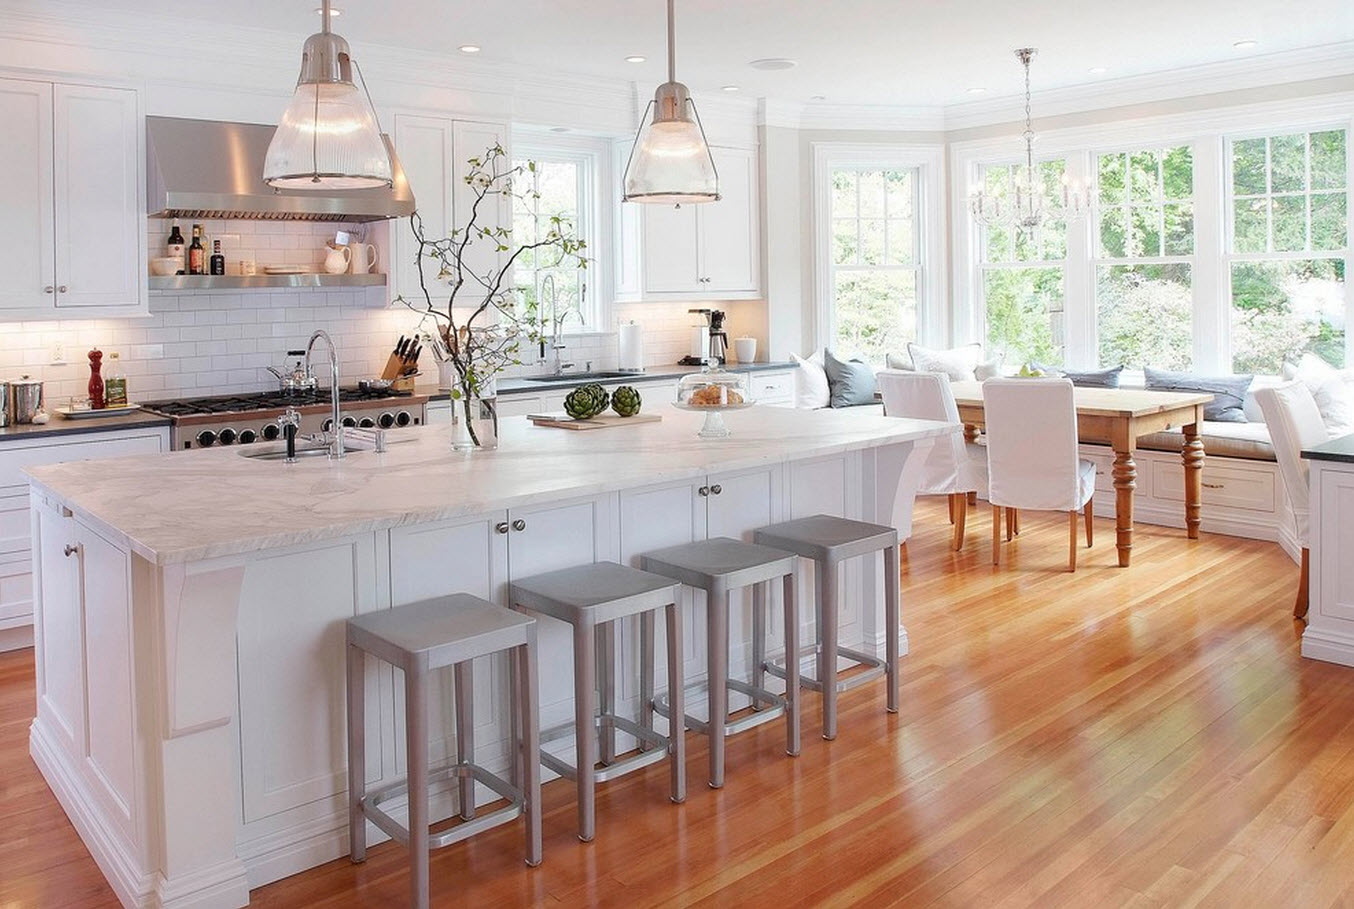 Wood Floor For Kitchens Decor Inspiration Kitchen Plans Mama In Heels